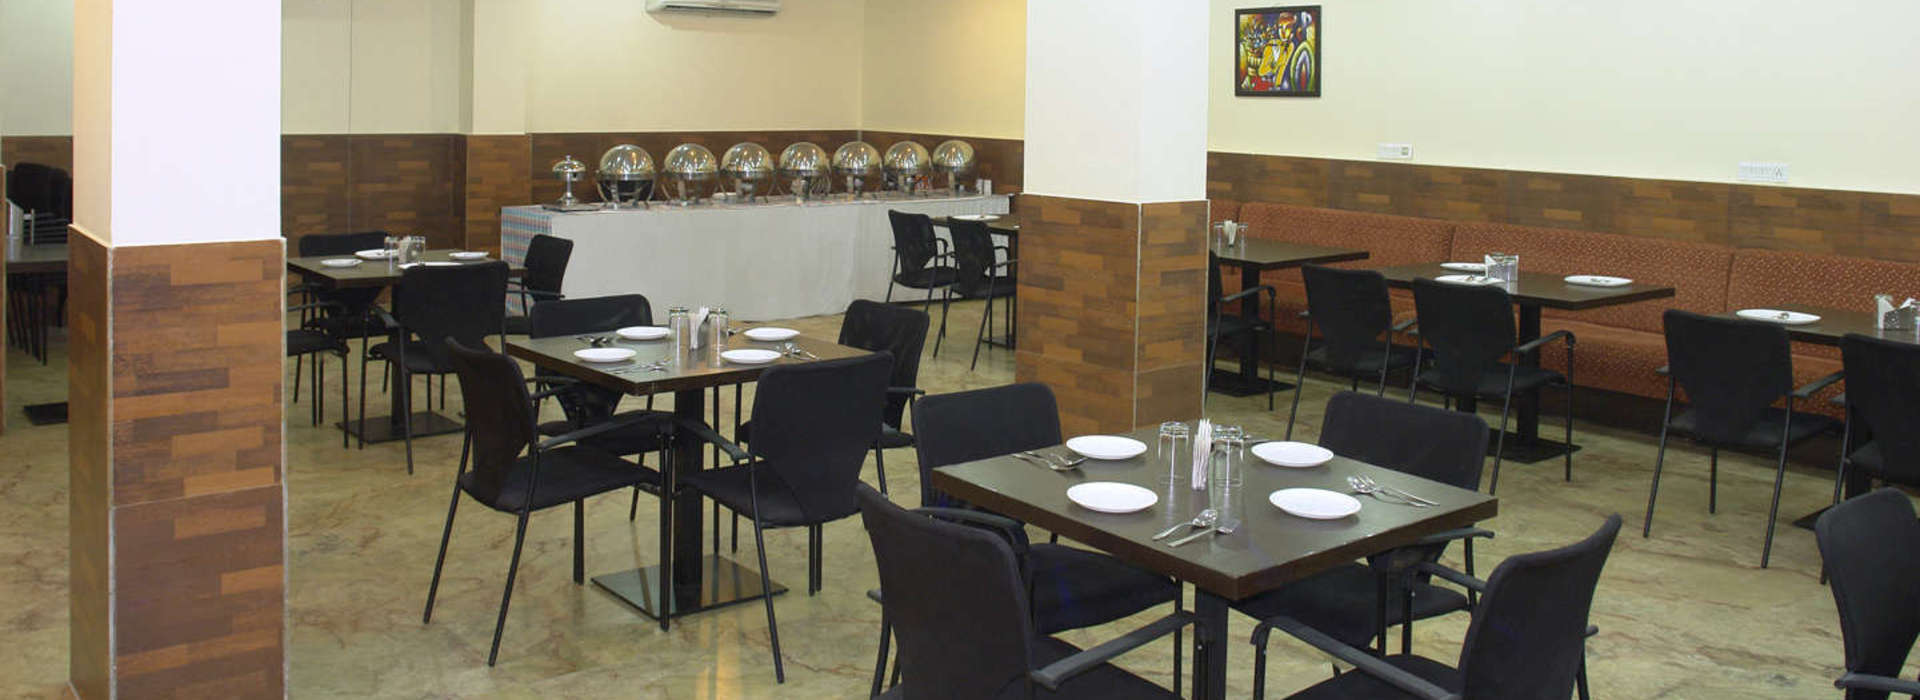 Enjoy Stay and Food at Our Dining cum Conference Hall